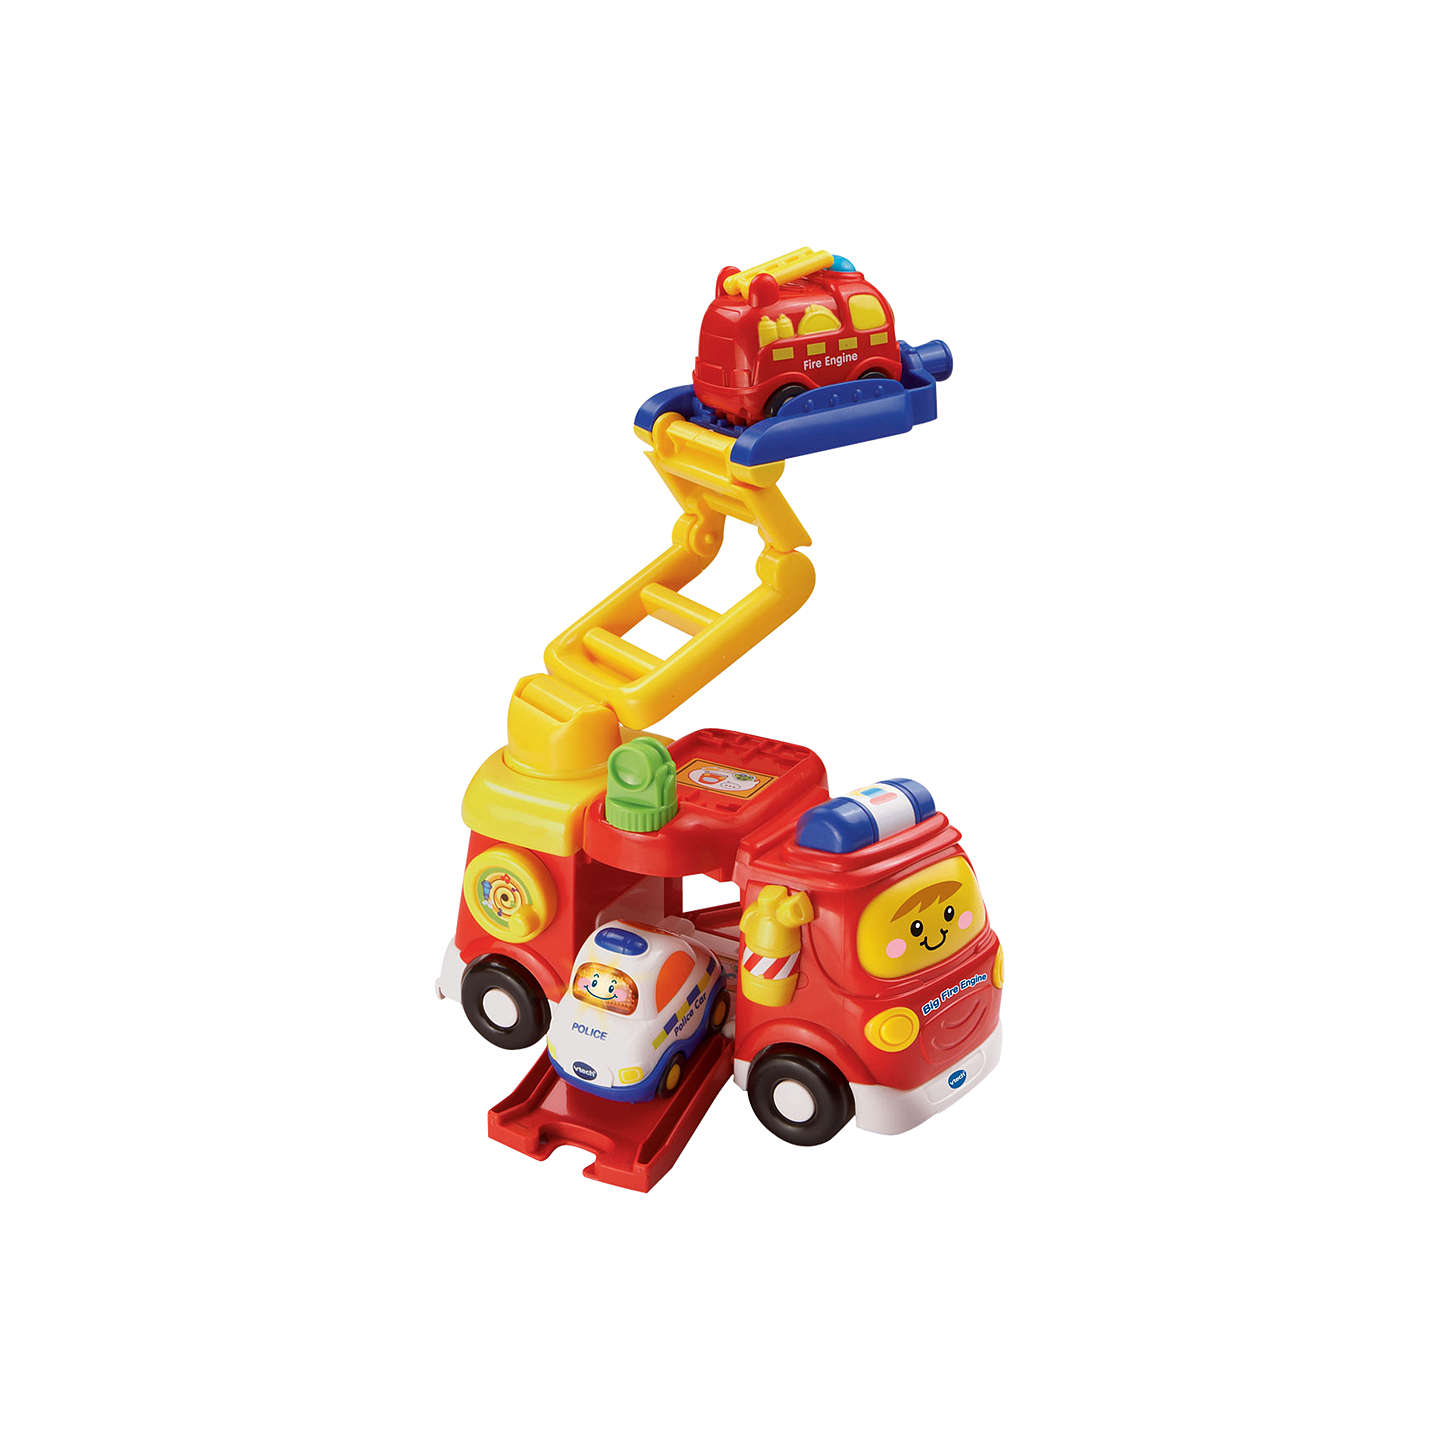 BuyVTech Toot-Toot Drivers Big Fire Engine Online at johnlewis.com